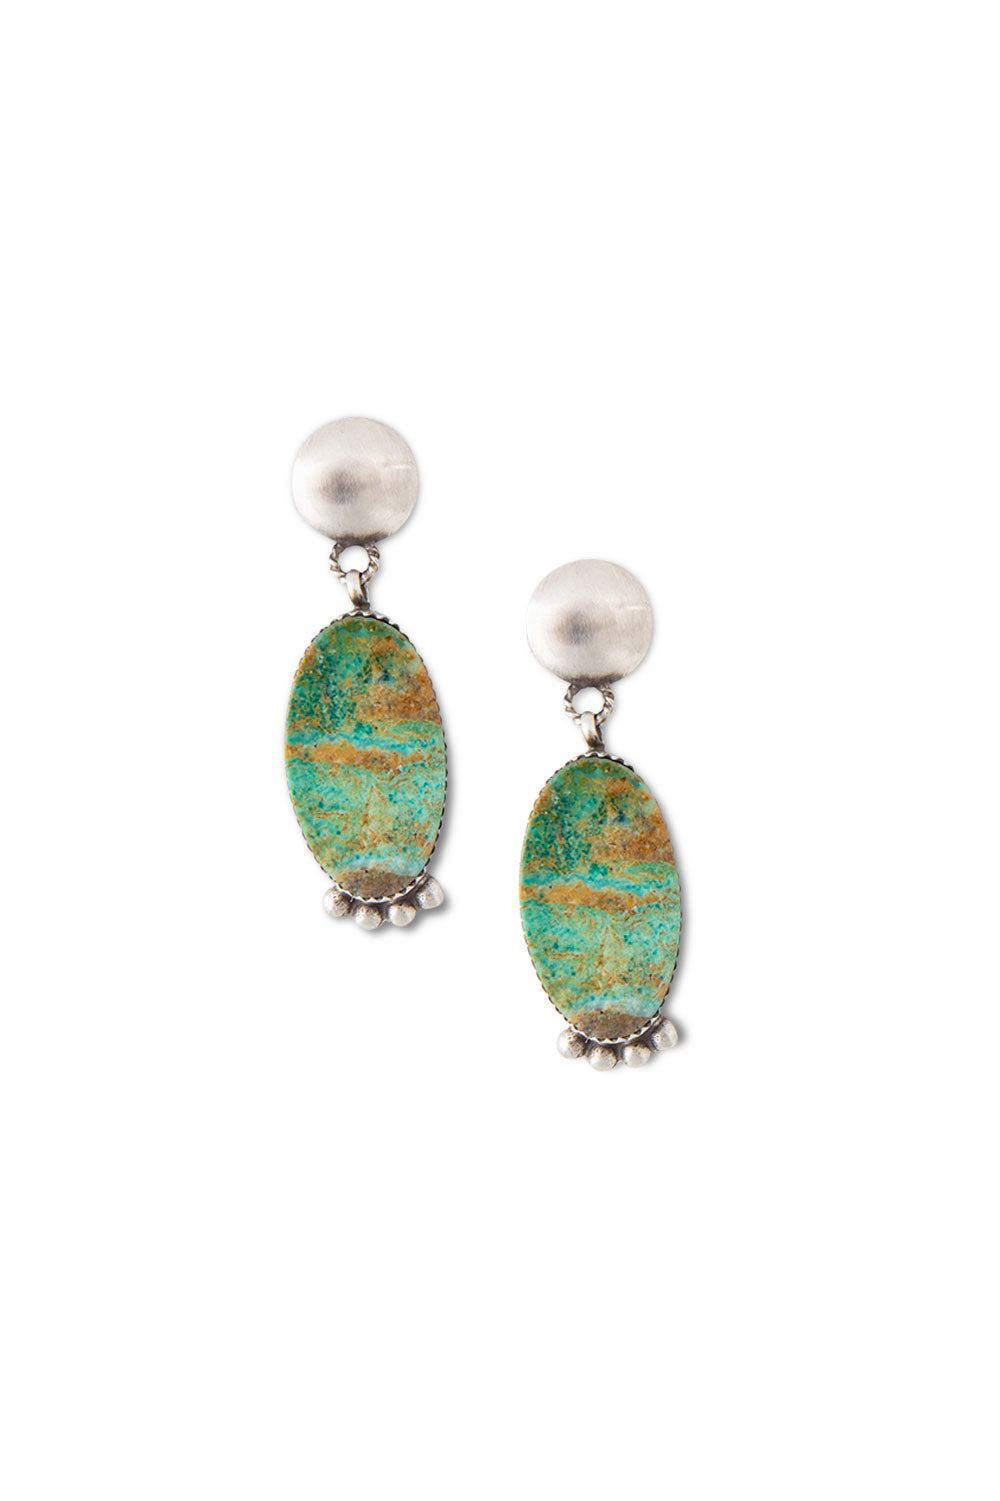 Earrings, Slab, Turquoise, Hallmark, 405